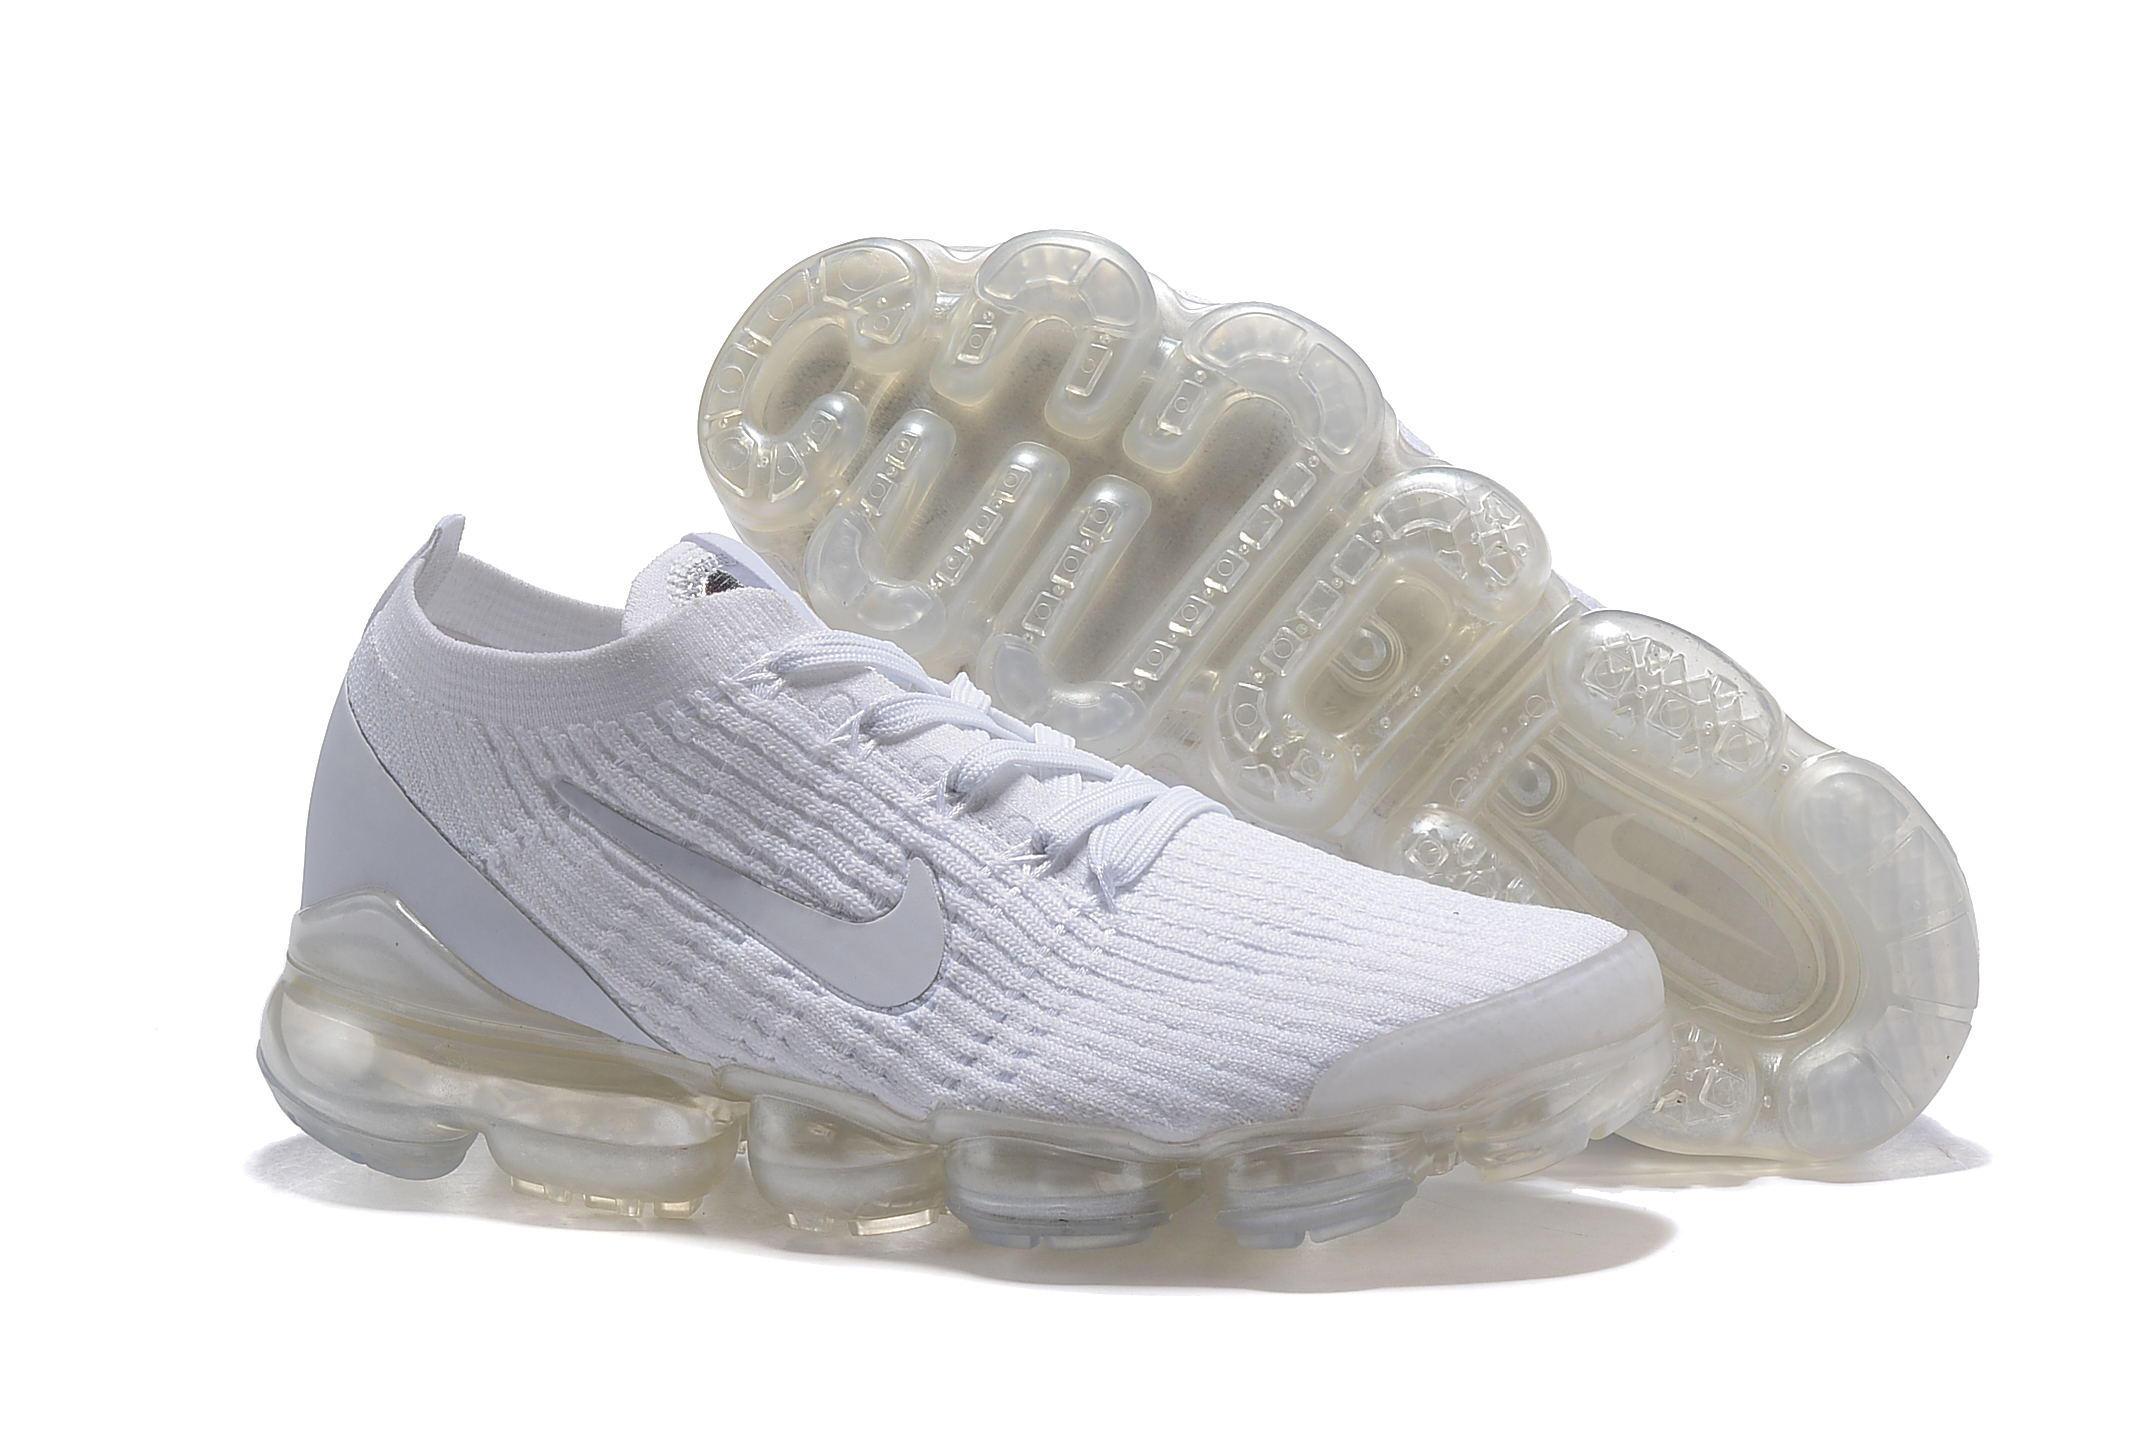 Nike Air VaporMax 2019 Flyknit All White Shoes